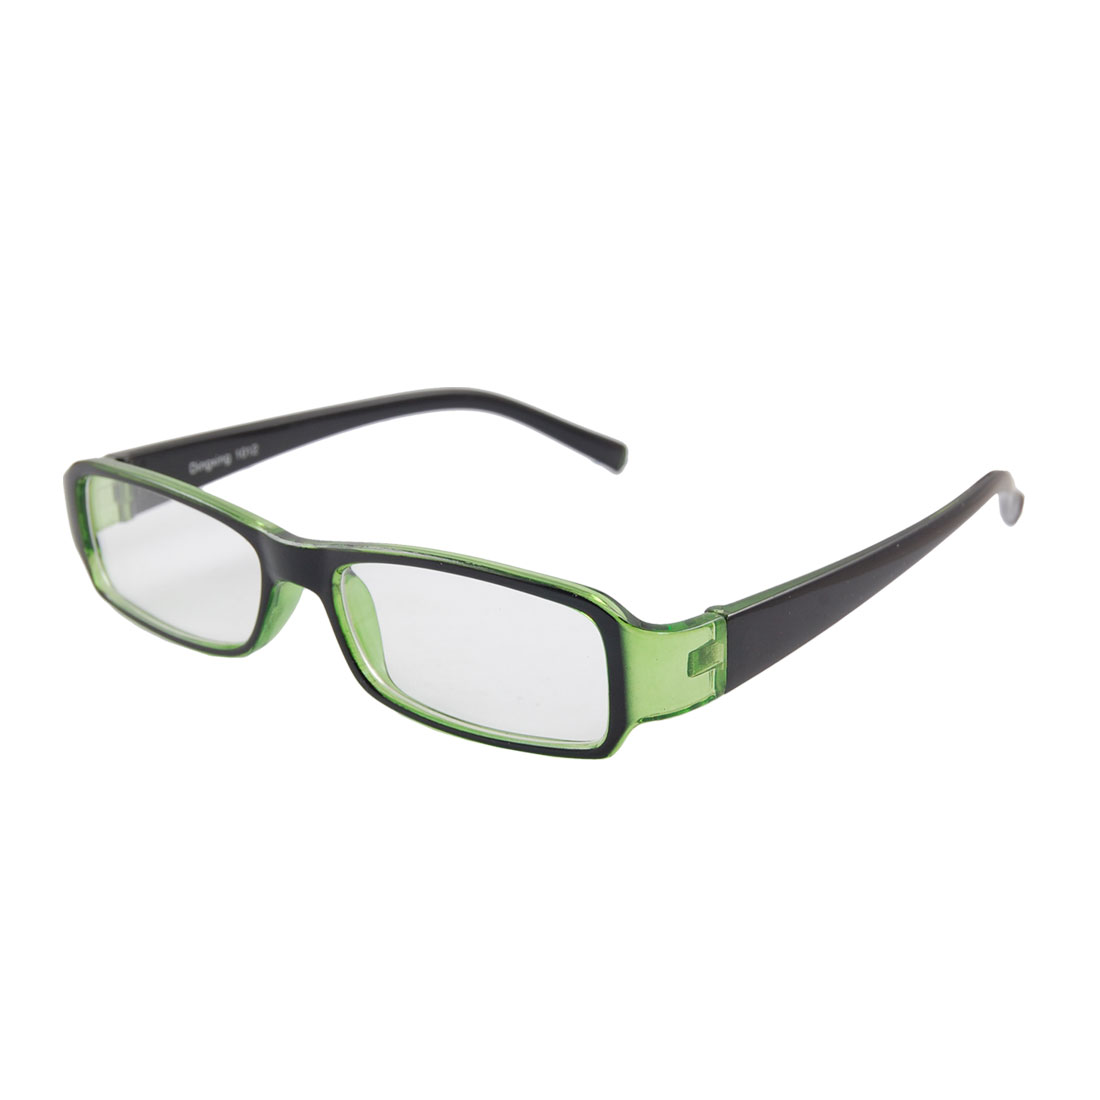 Plastic Full Frame Arms Plain Plano Eyeglasses Clear Green for Women